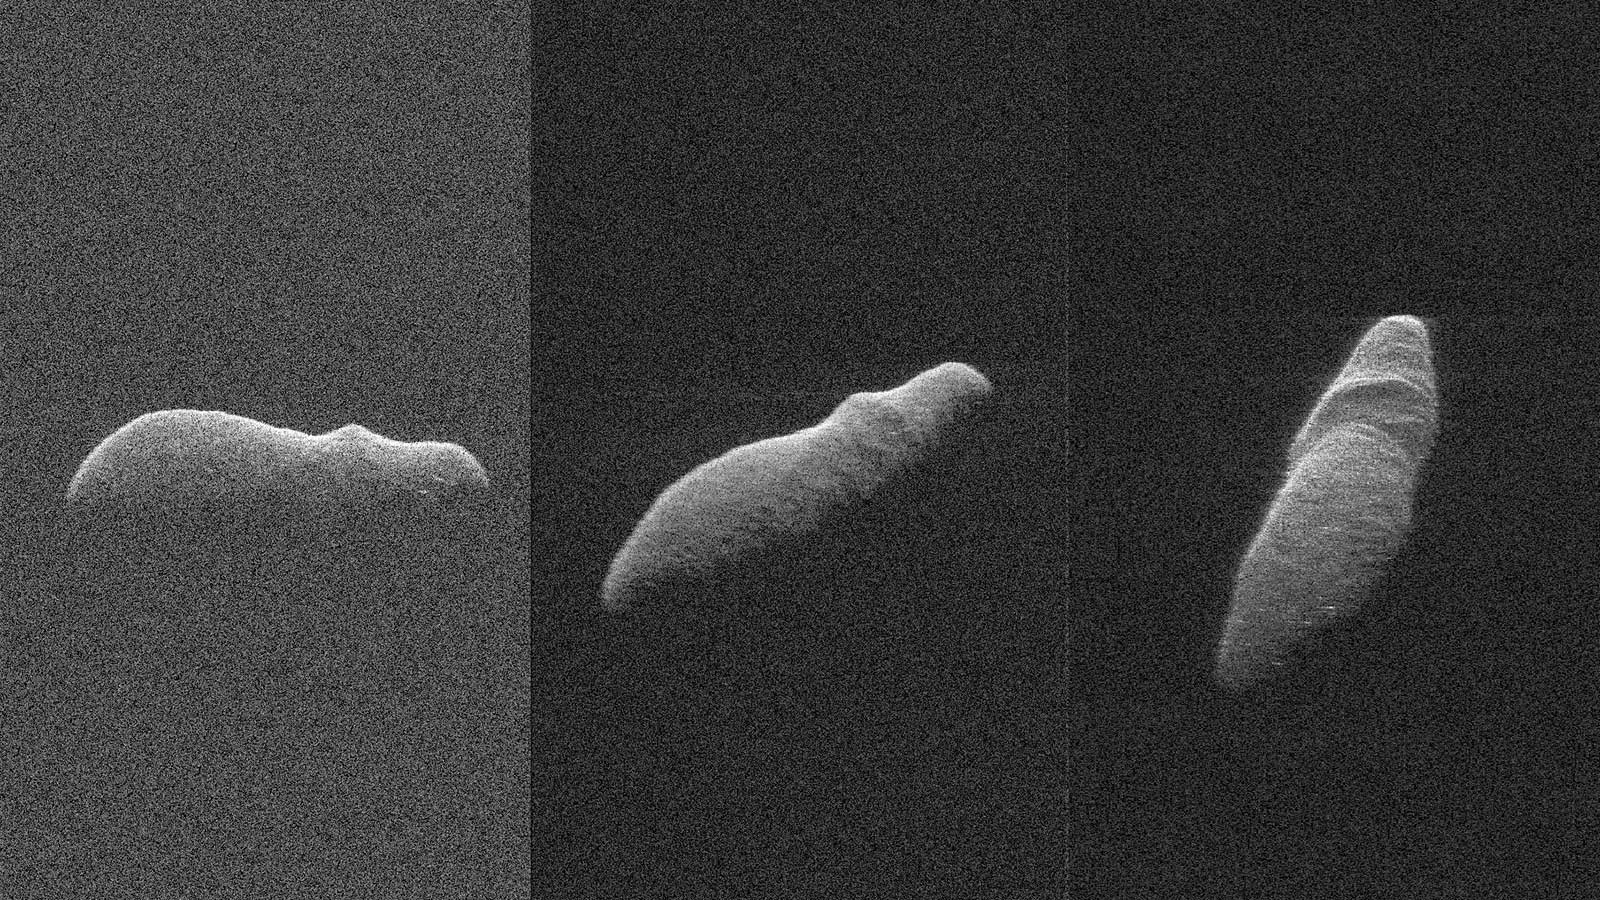 Fuzzy images of potato-shaped asteroid.